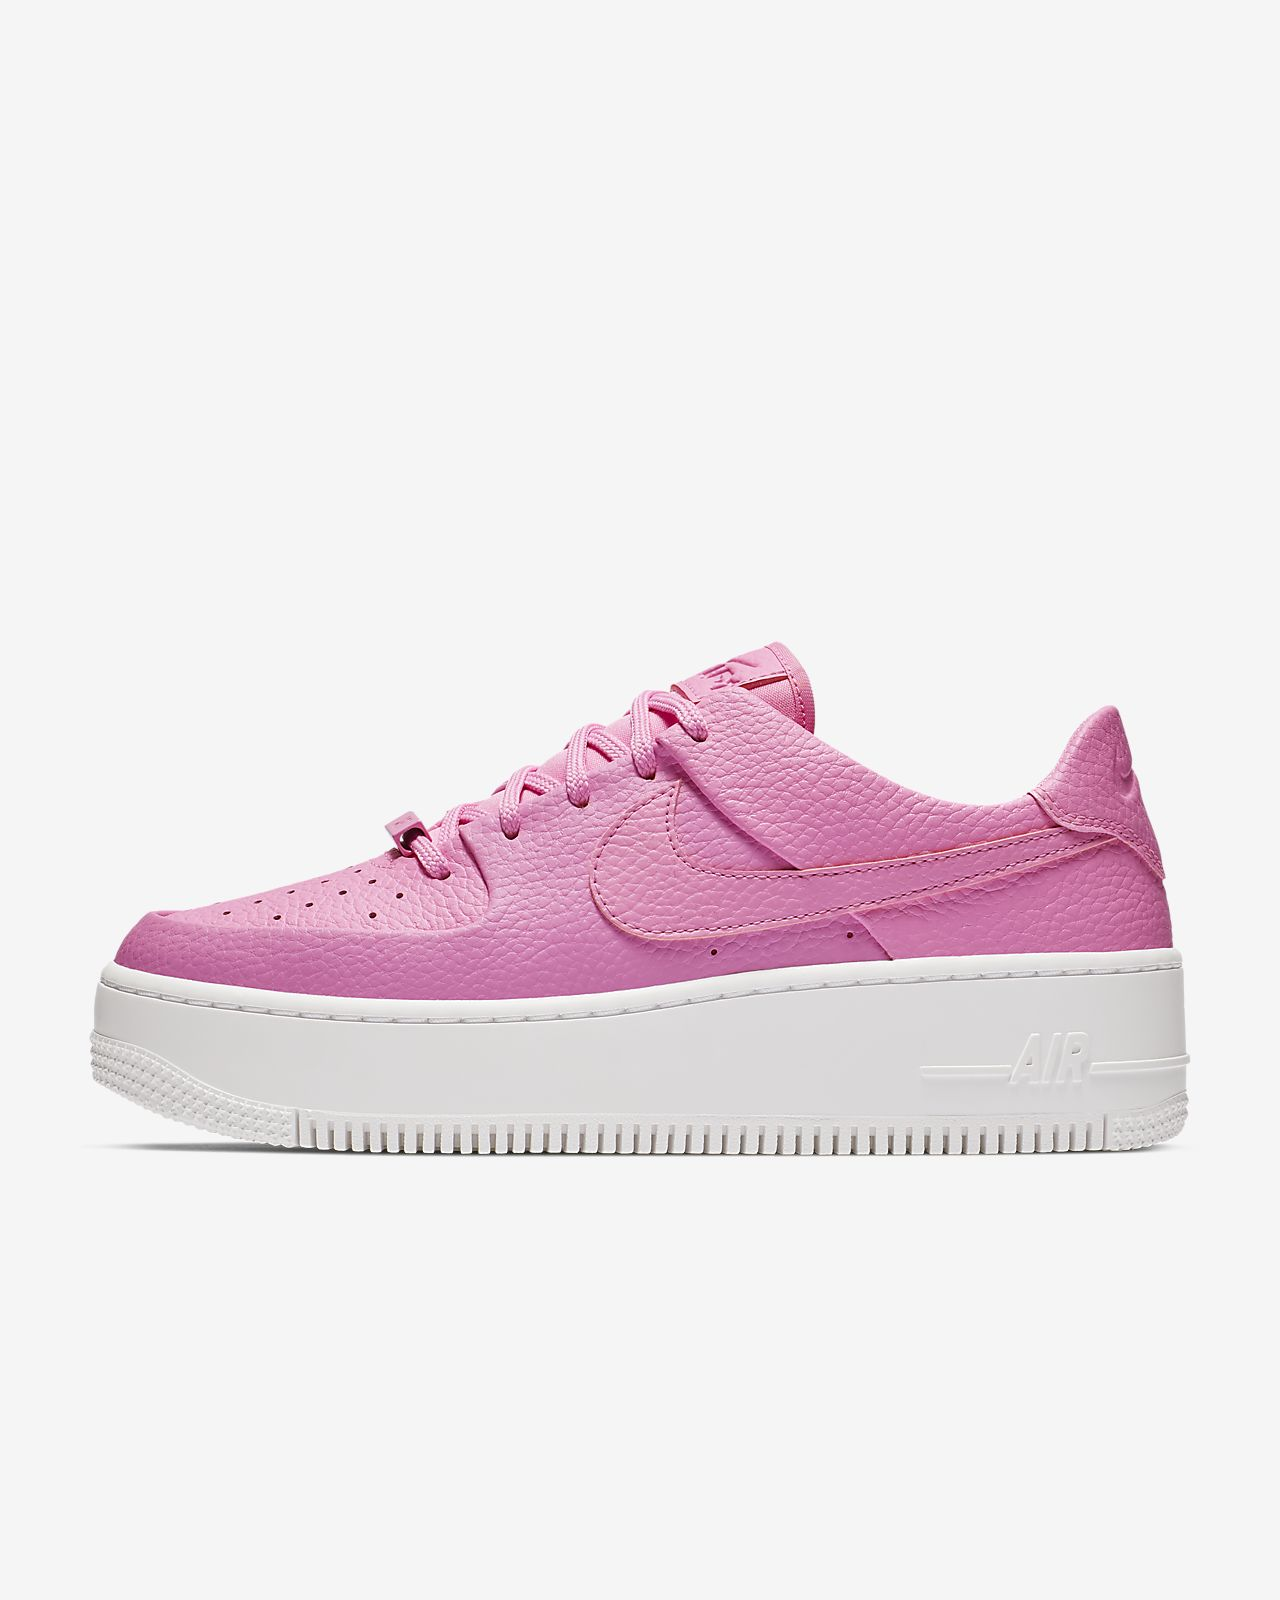 competitive price 1b6b1 41d6d ... Nike Air Force 1 Sage Low Women s Shoe